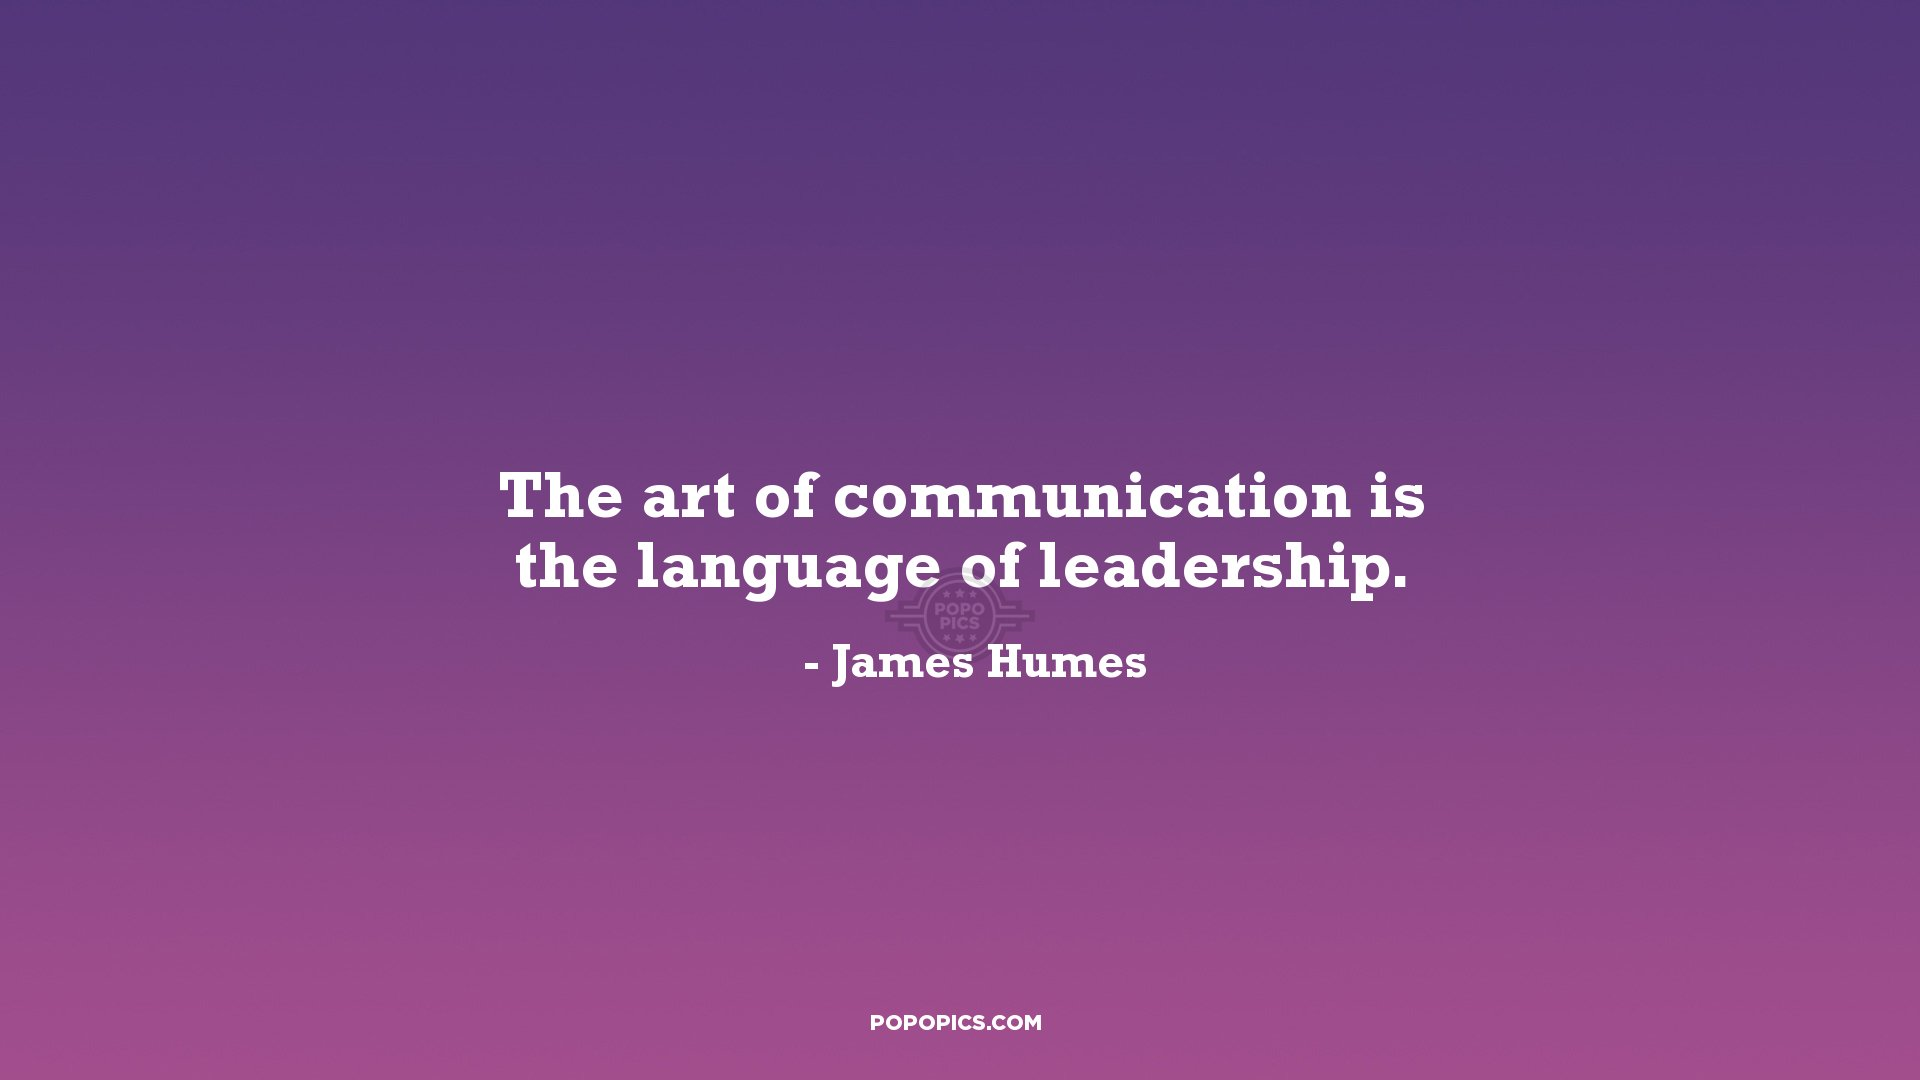 Download Romantic Love Quotes Wallpapers The Art Of Communication Is The Language Of Quotes By